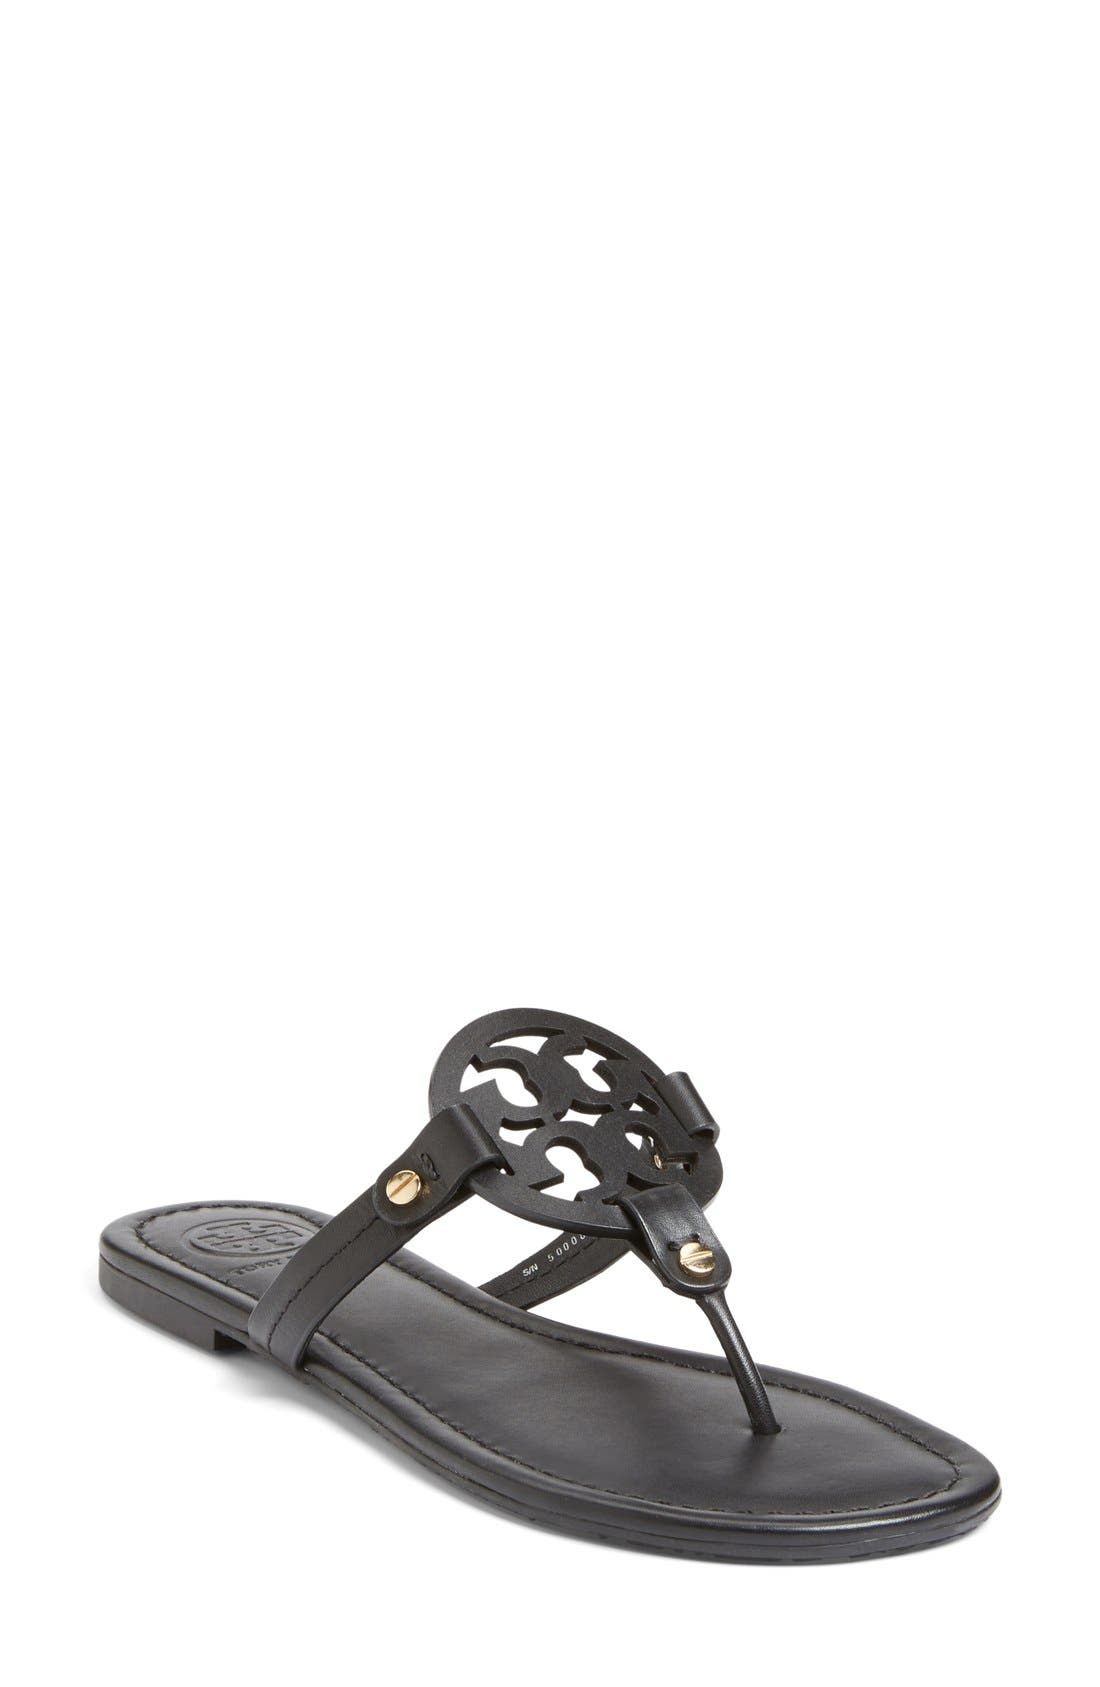 Black sandals with straps - Black Sandals With Straps 6